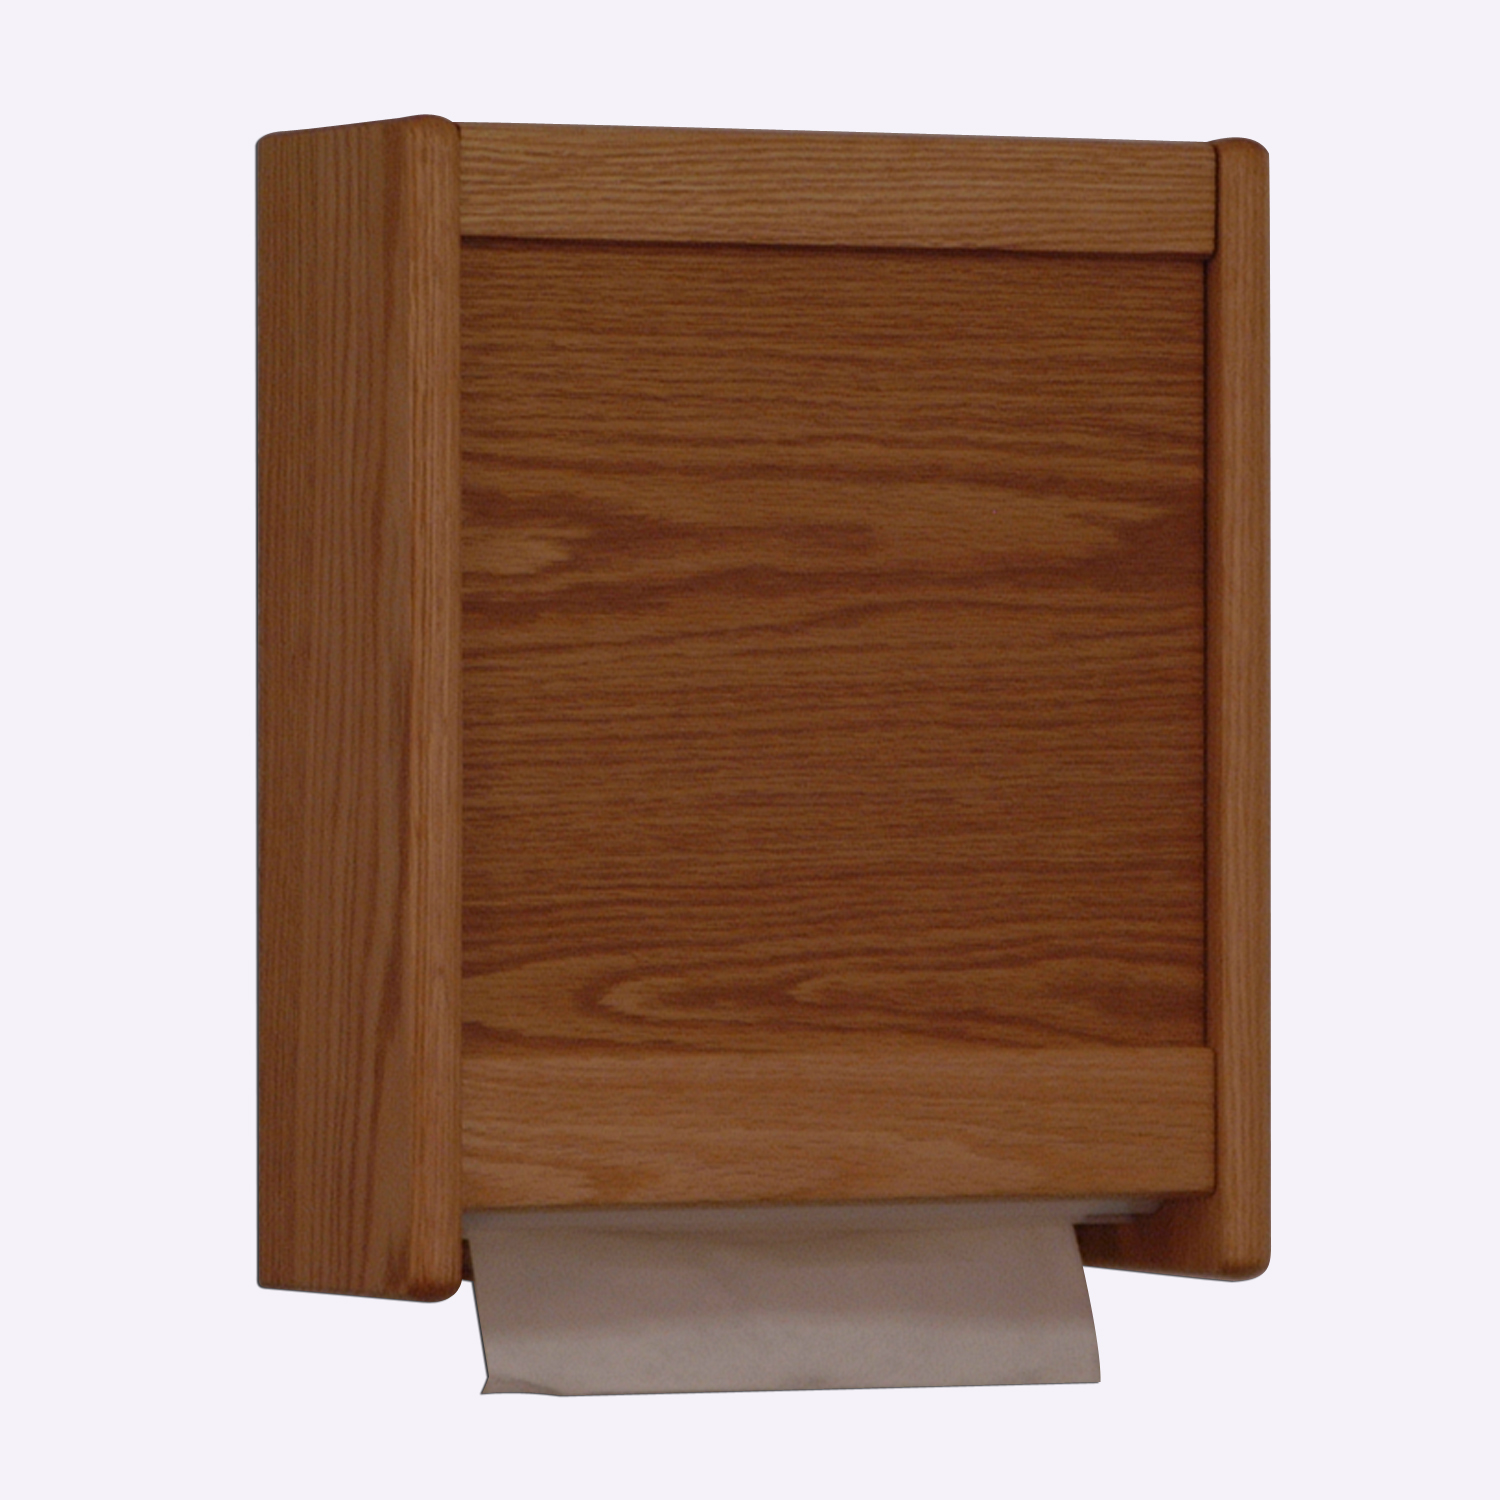 Offex C-Fold/Multi-Fold Towel Dispenser Light Oak